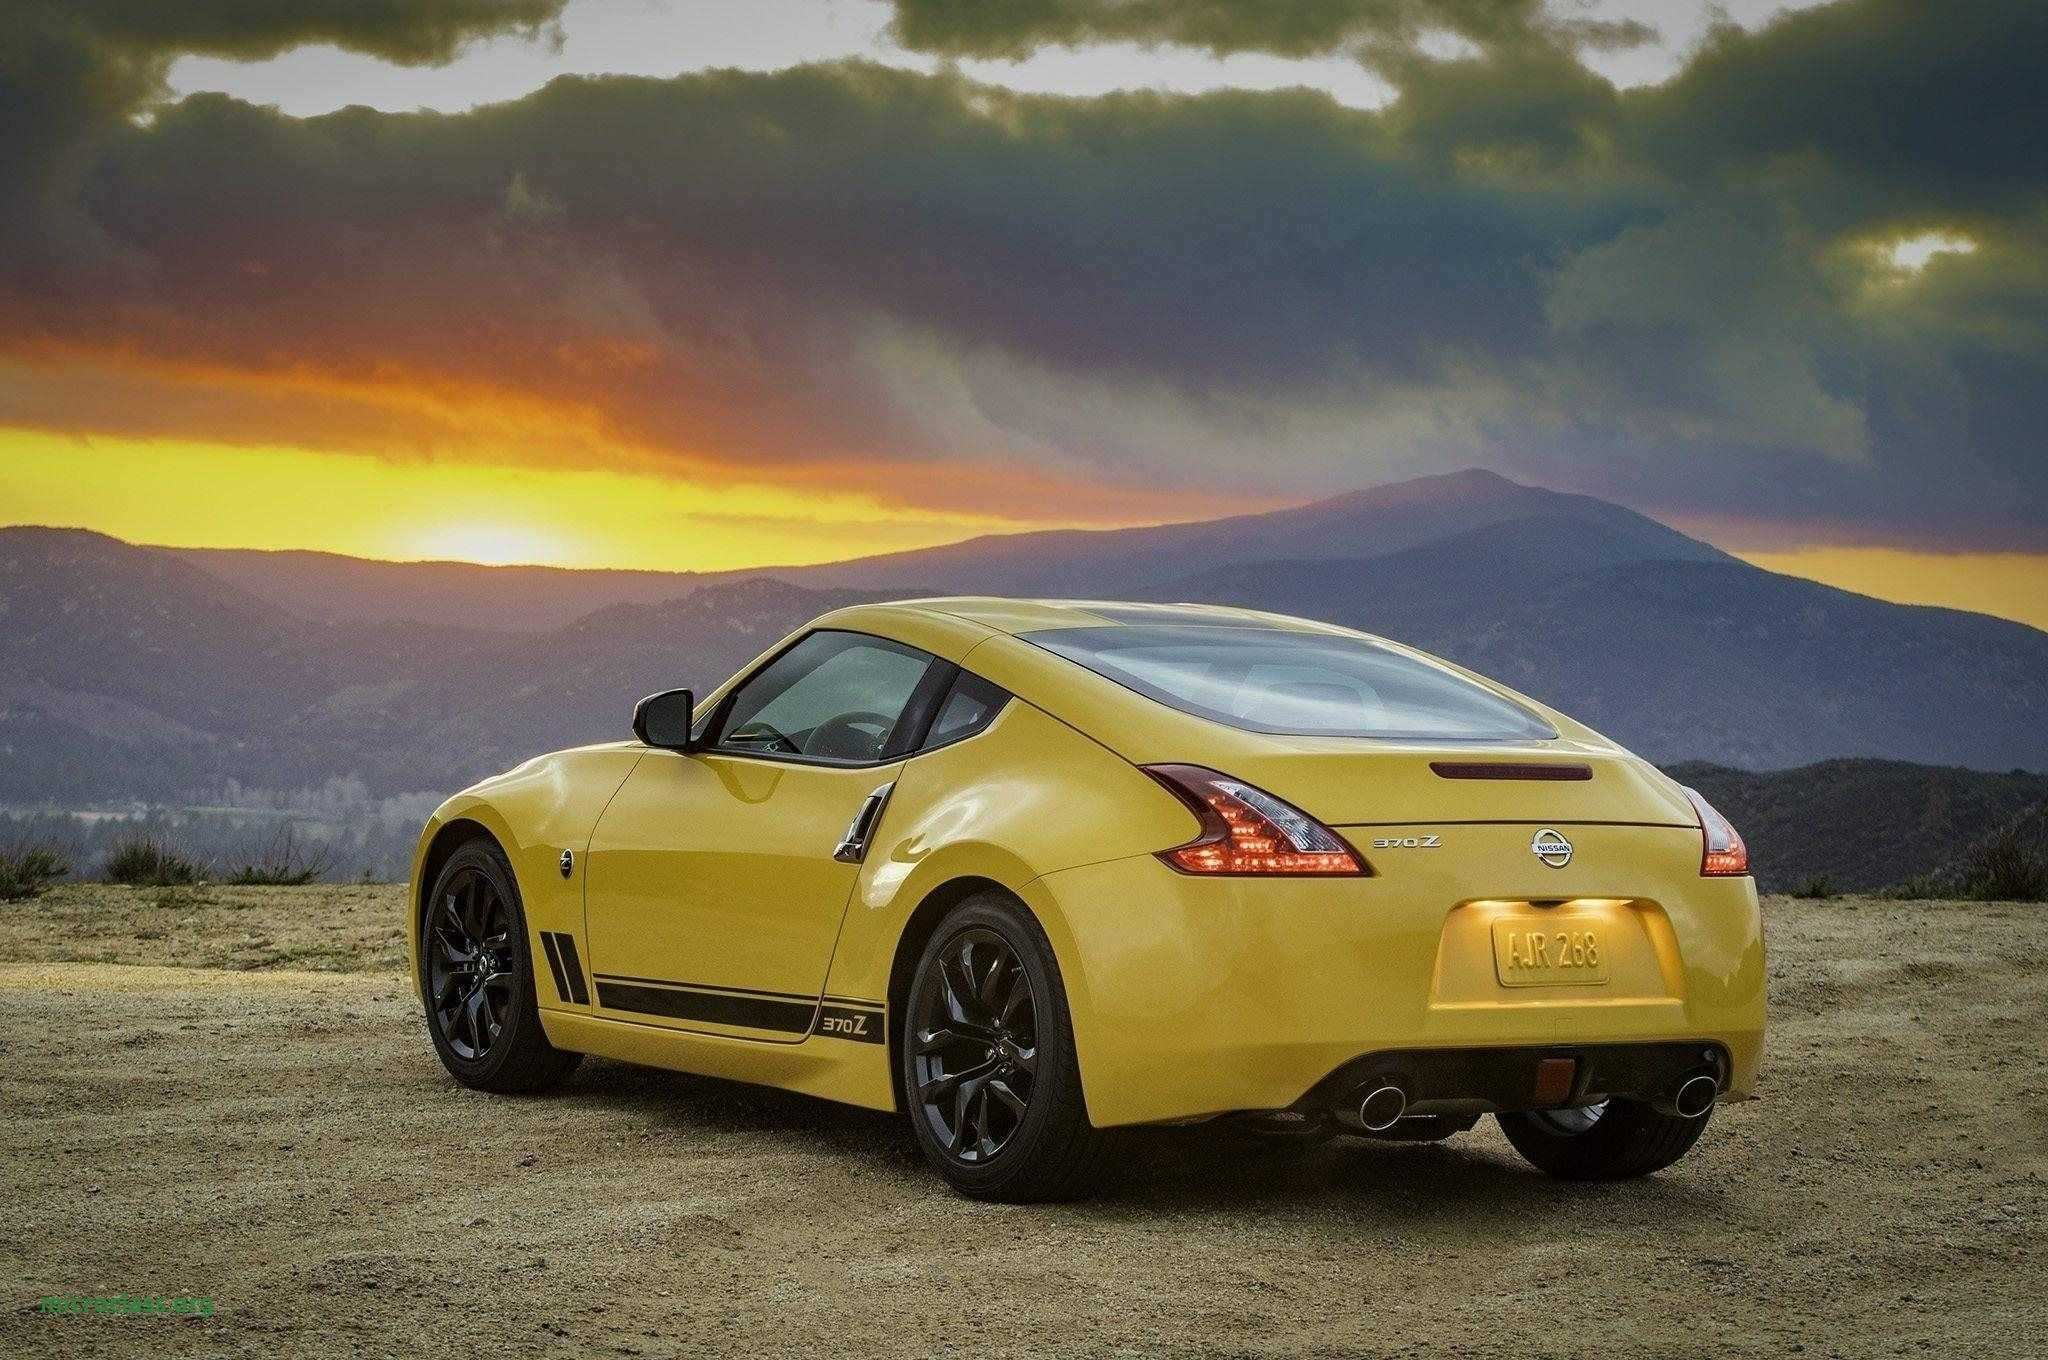 20 New 2020 The Nissan Z35 Review Wallpaper